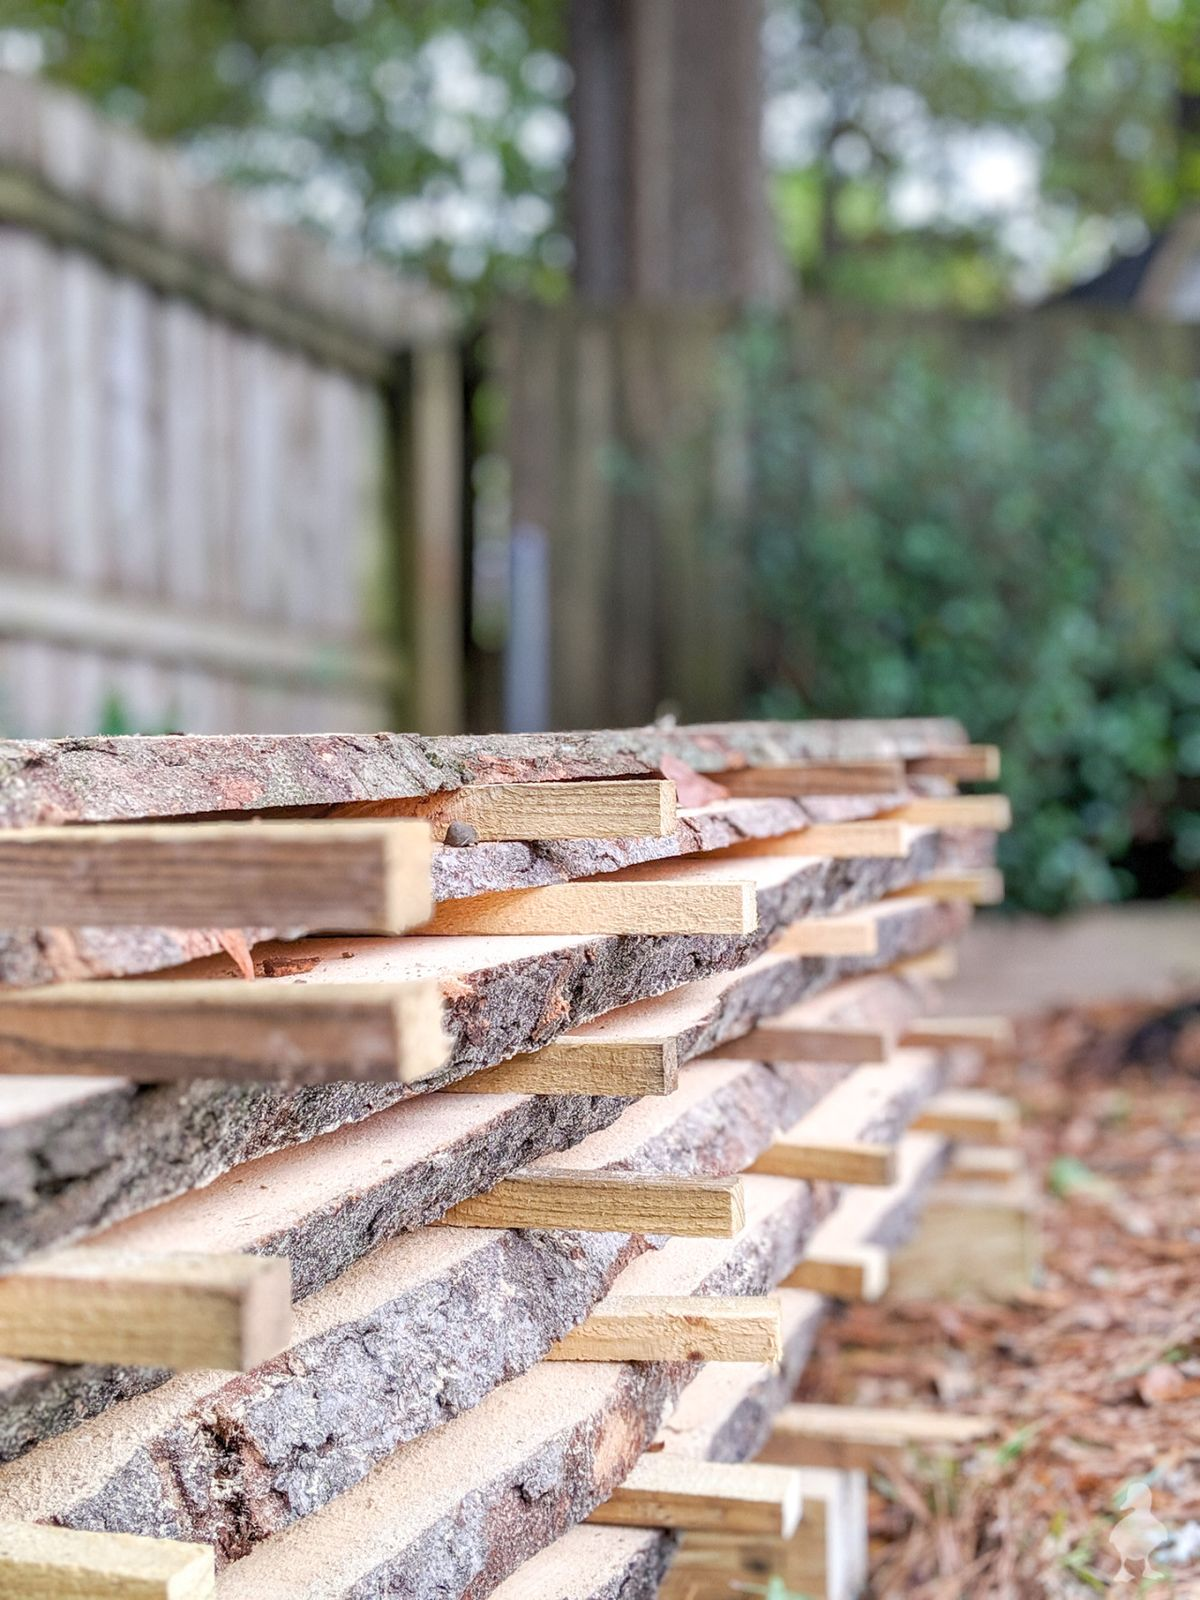 So neat! Portable wood milling is possible, even in the suburbs. If you cut down a beautiful tree, turn it into wood for a table or cutting board for years to come. We break down all the steps to save hardwood logs and what to expect by hiring a sawyer. #woodworking #woodslabs #lumber #woodmilling #stihl #chainsaw #hardwood #southernmagnolia #magnolia #ad